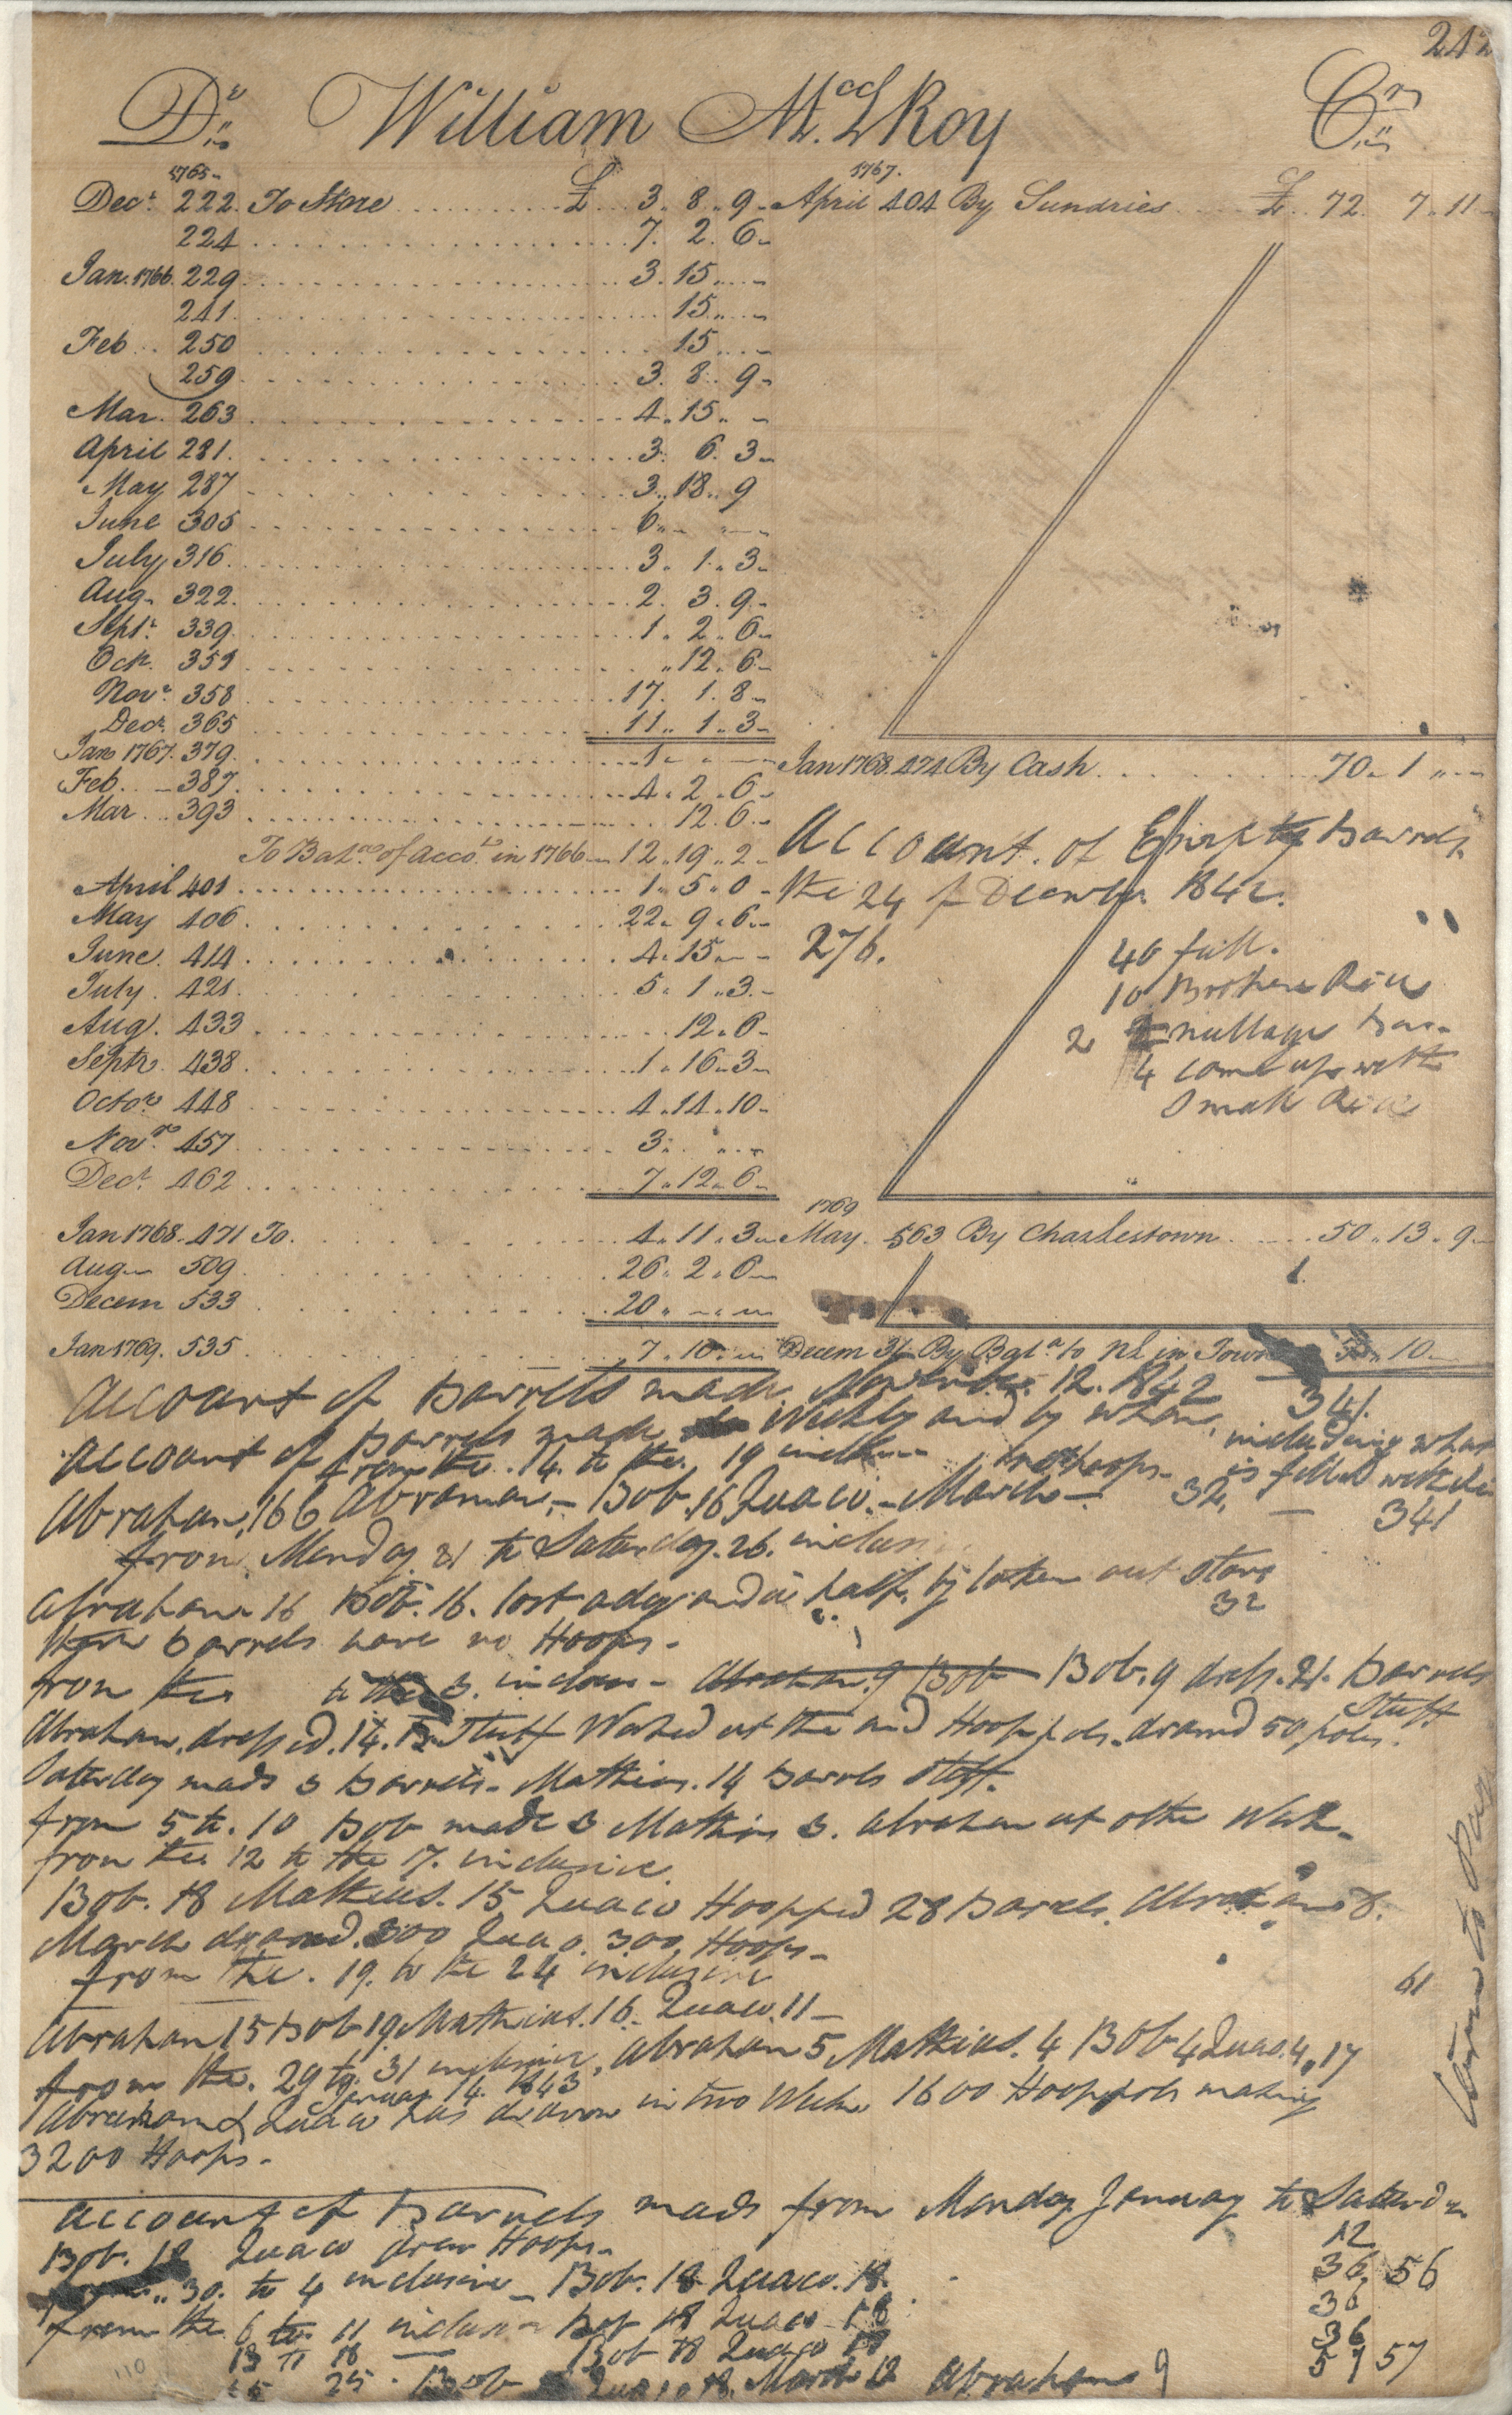 Plowden Weston's Business Ledger, page 242